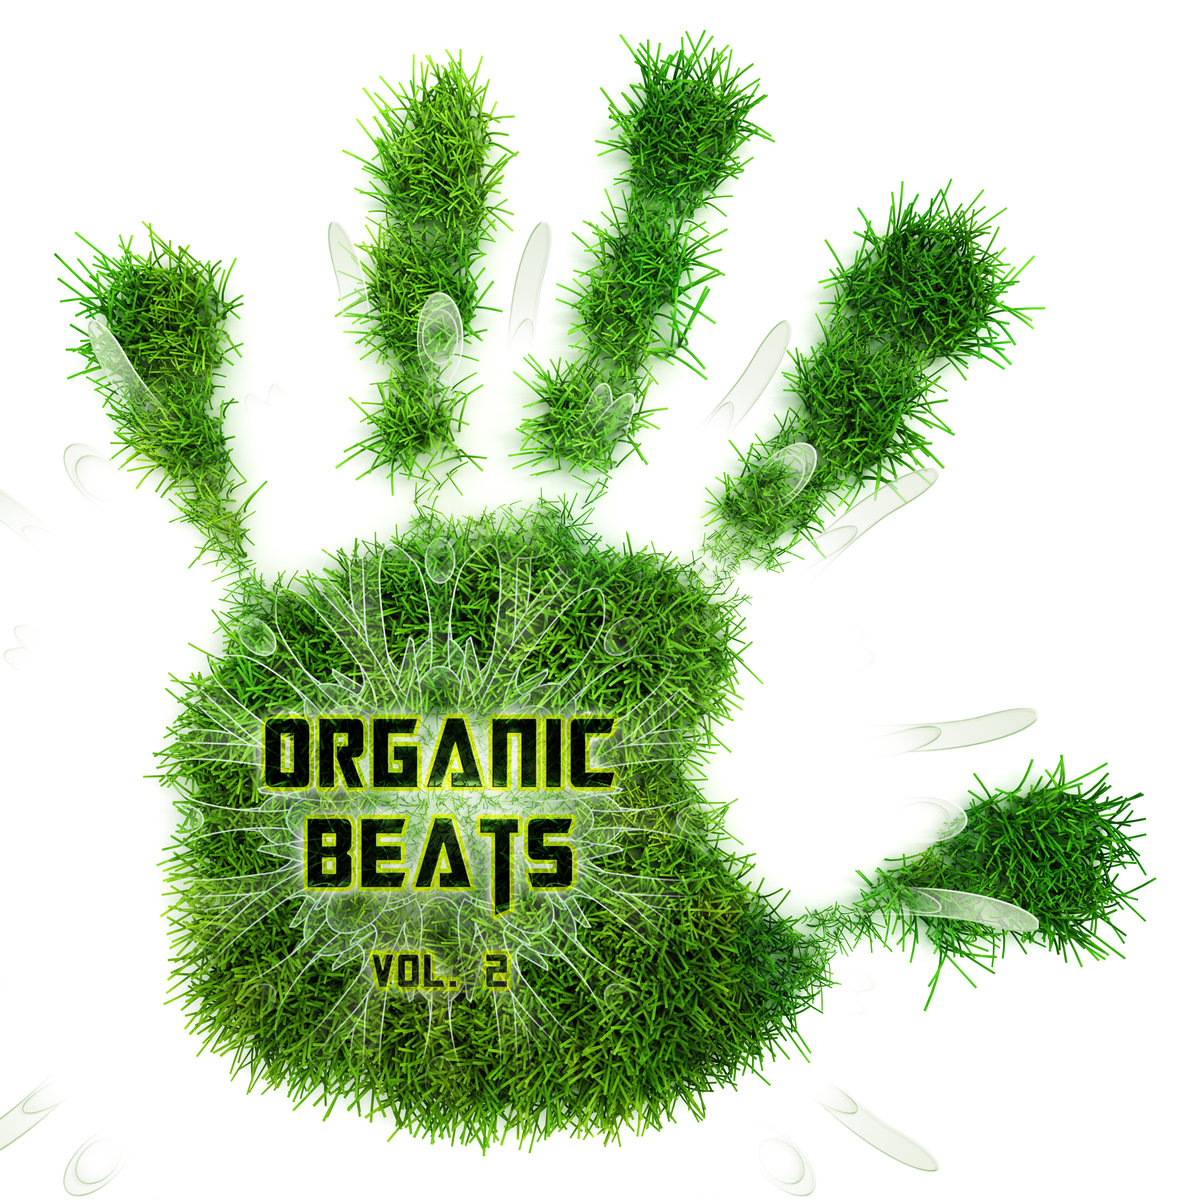 NUCLEAR RAMJET - NoWhereClose 3.0 @ 'Organic Beats Vol.2' album (dj zen, electronic)